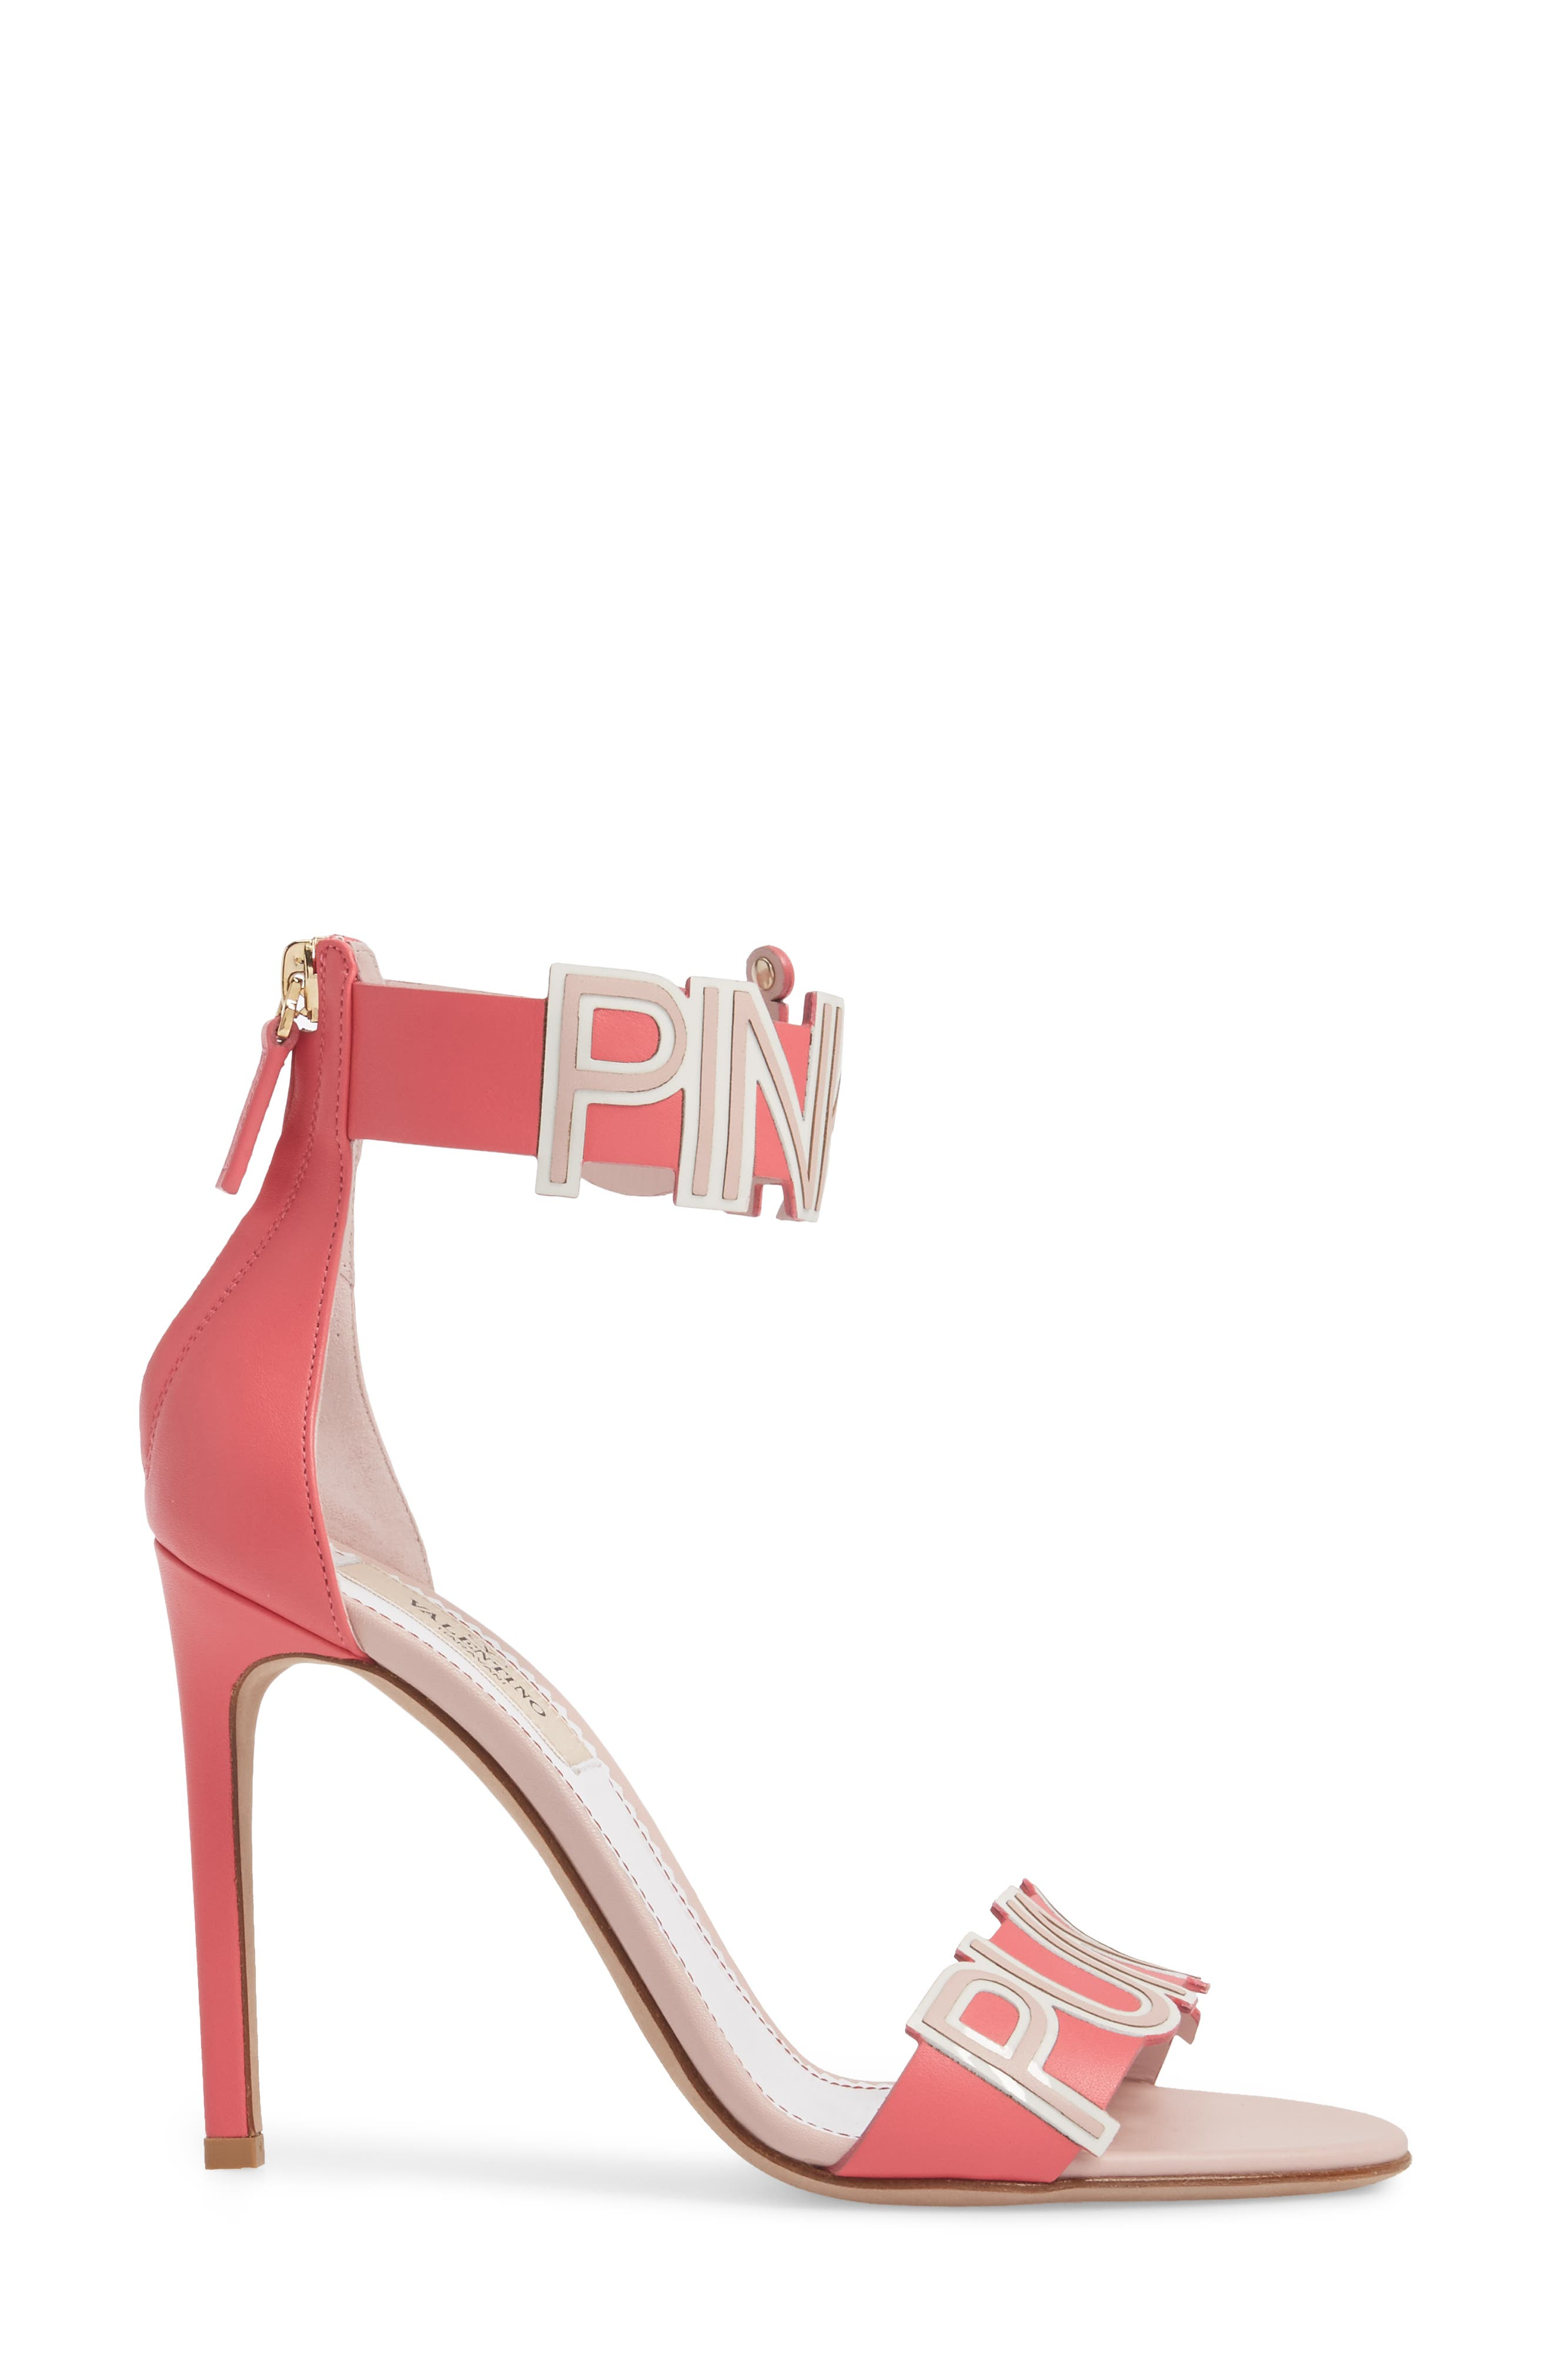 Pink Is Punk Ankle Strap Sandal,                             Alternate thumbnail 3, color,                             Shadow Pink